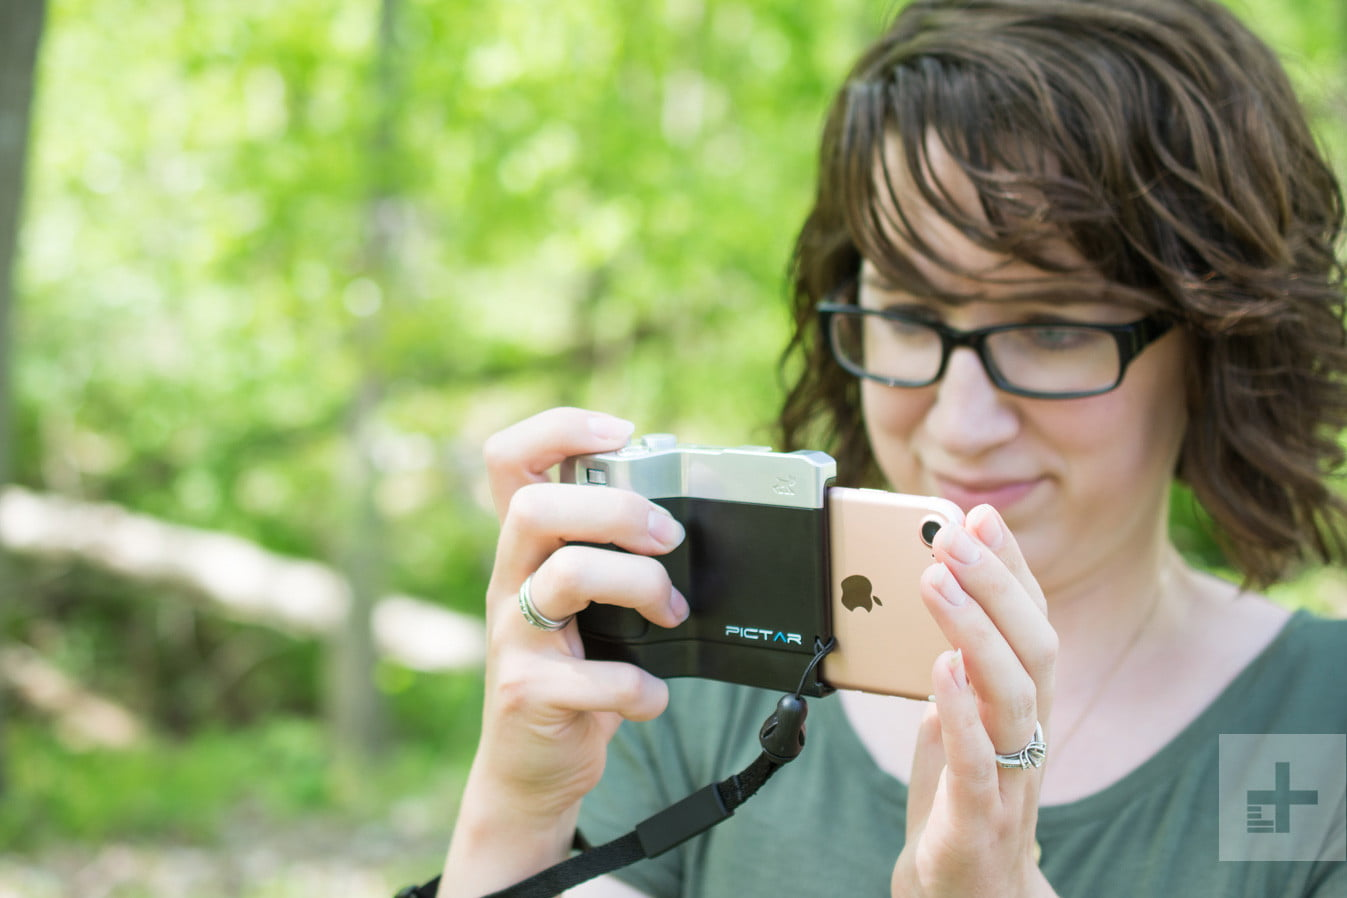 pictar iphone camera case review wm 2